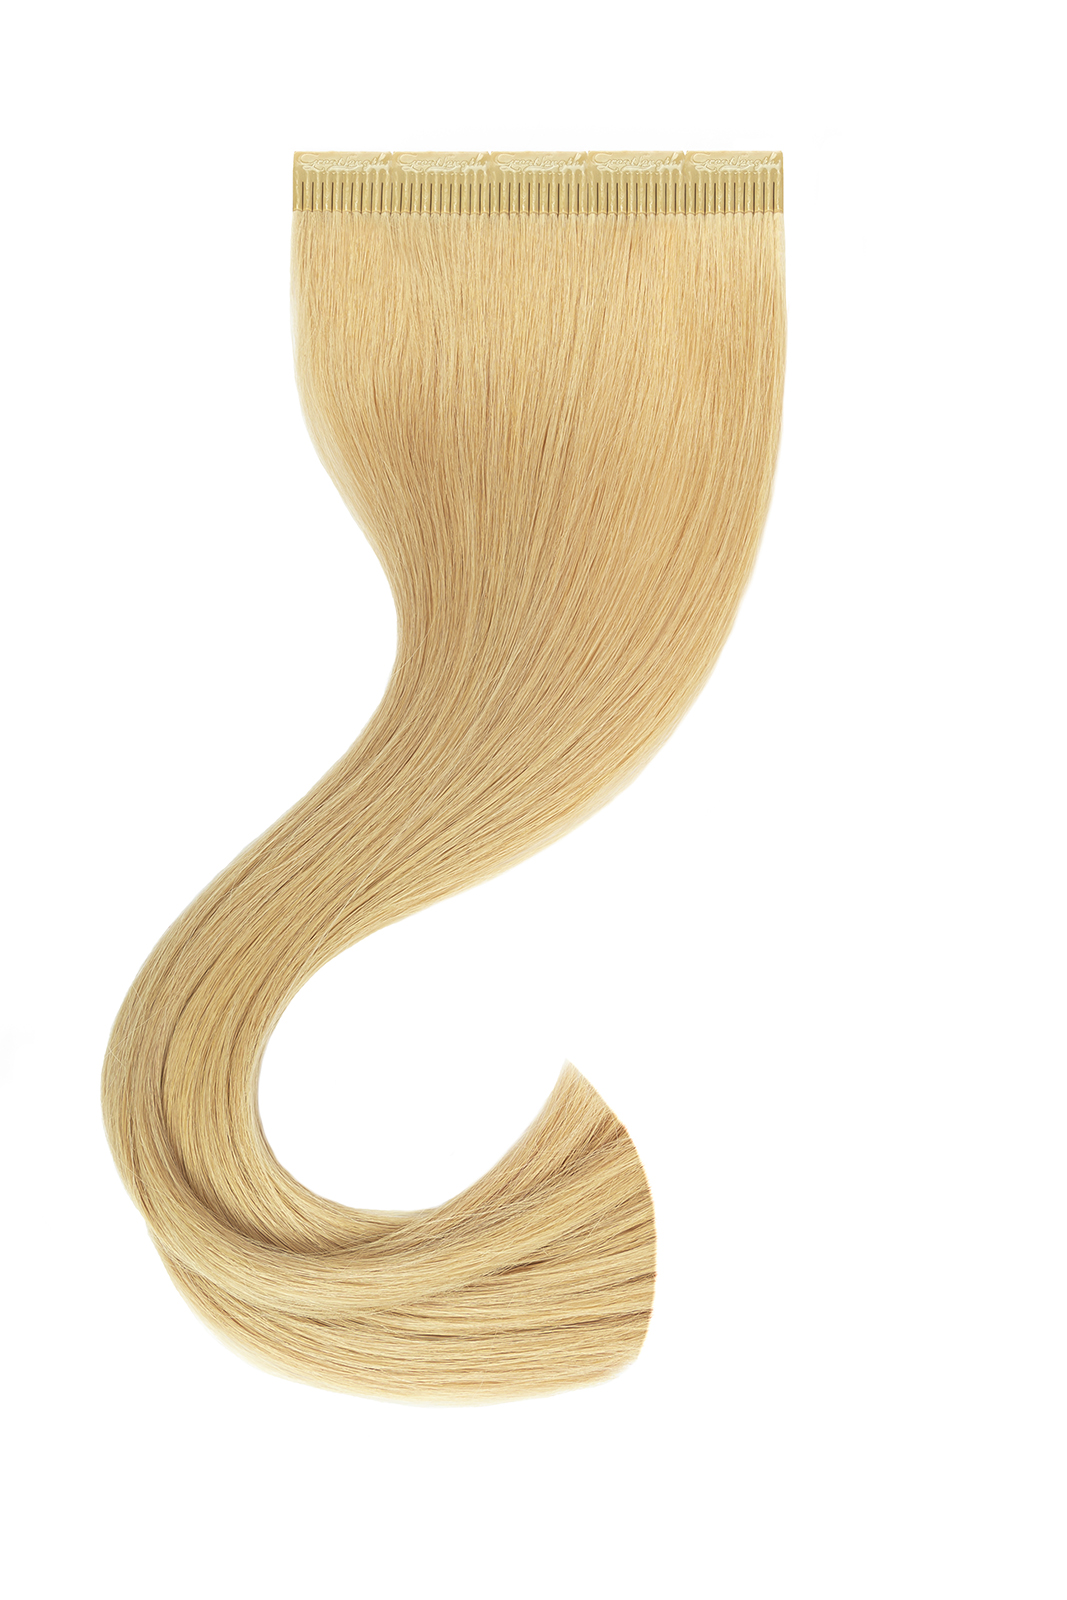 GL Pre Bonded hair extensions - Mini Product Line